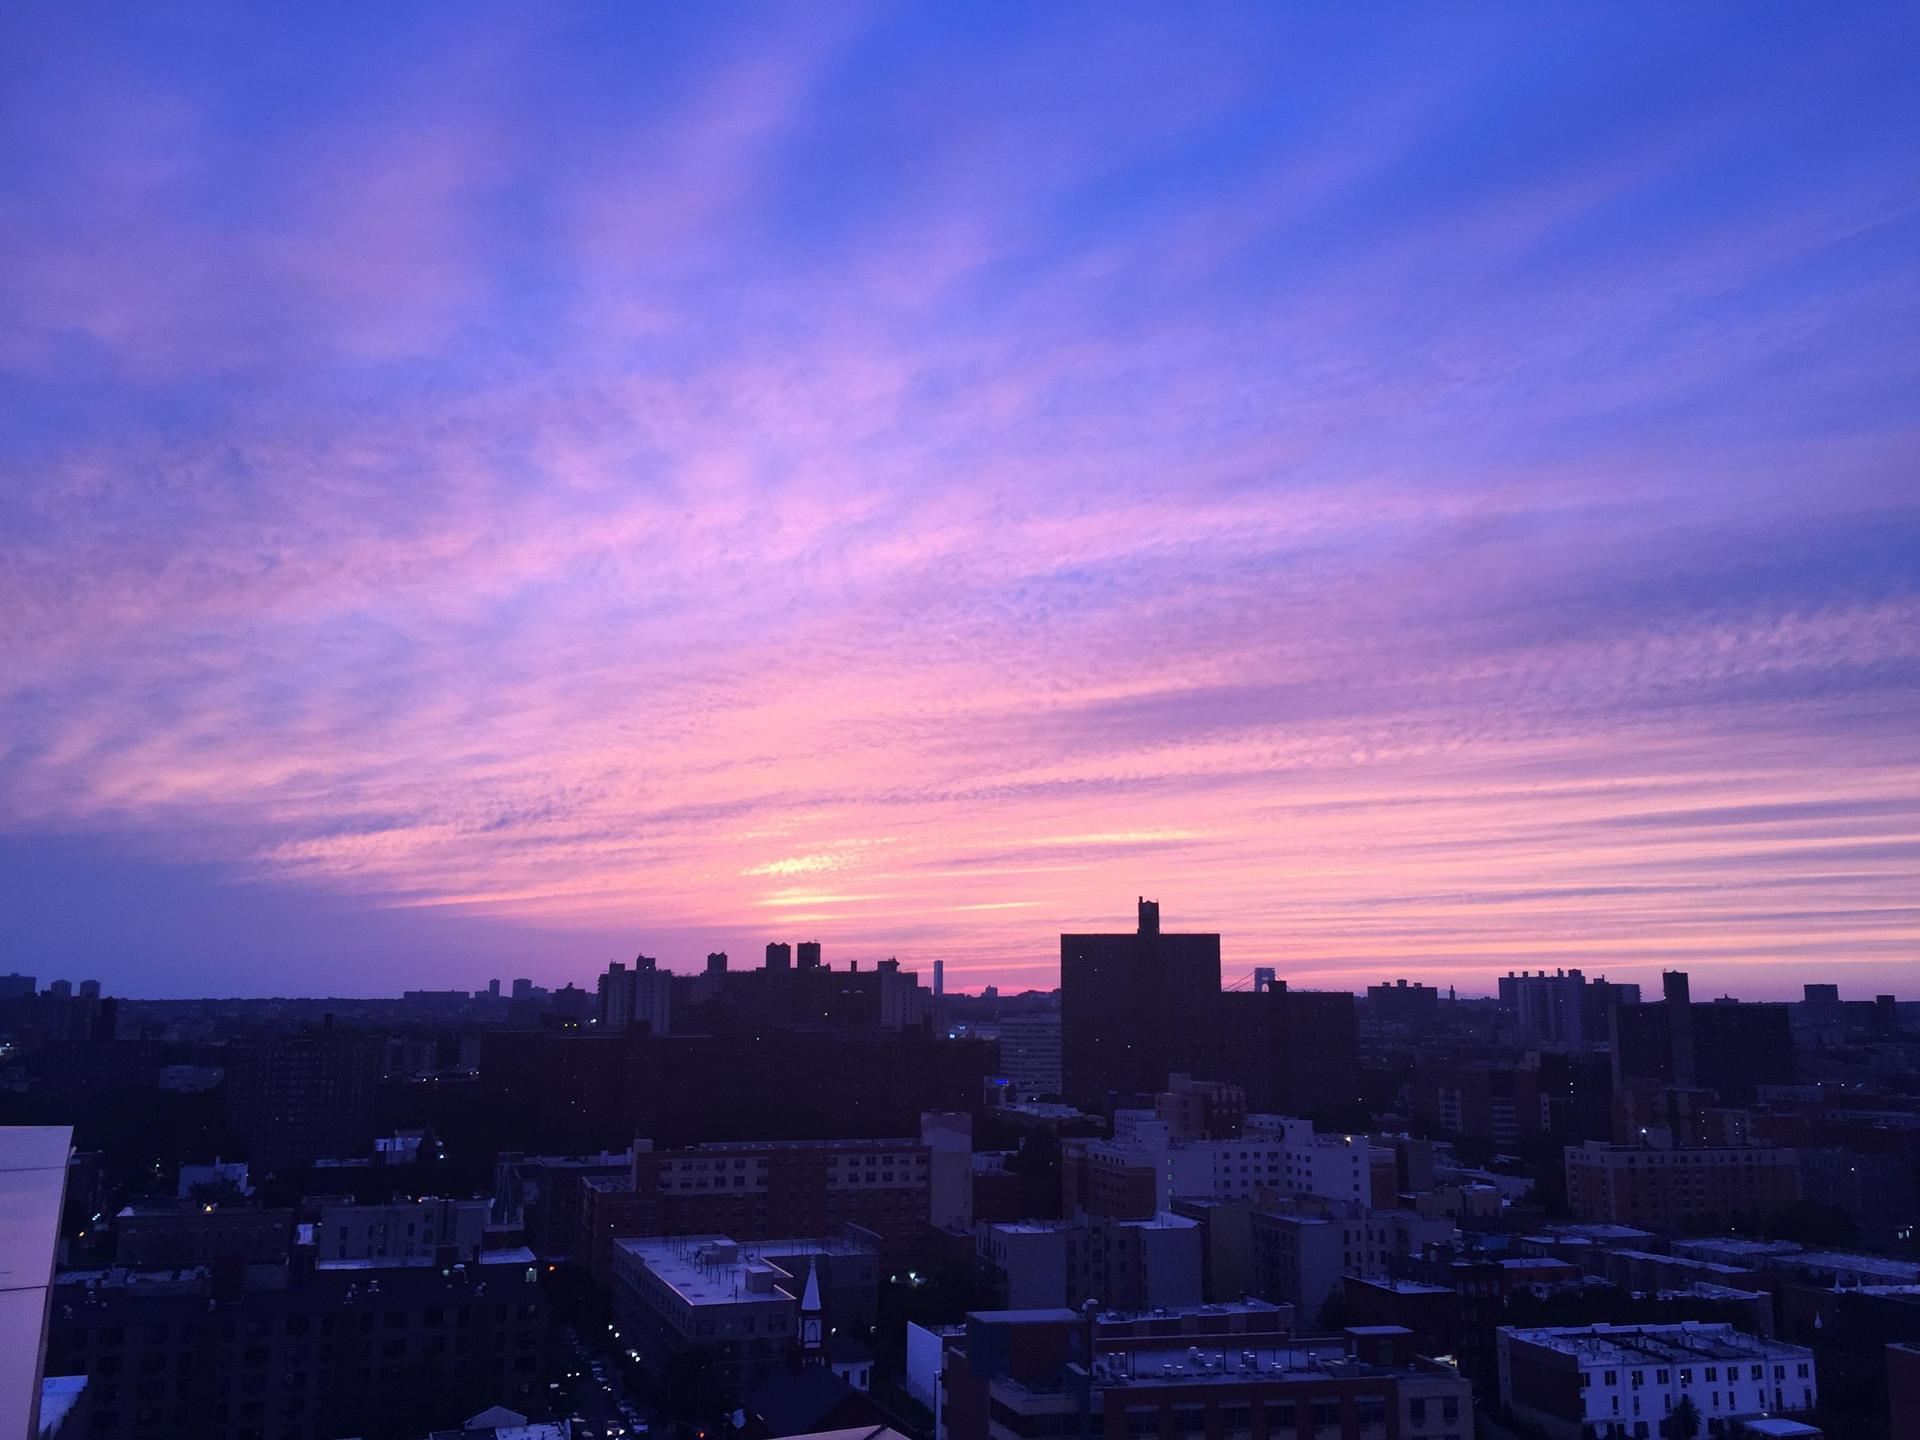 nyc sunset with bright pinks and purple skies